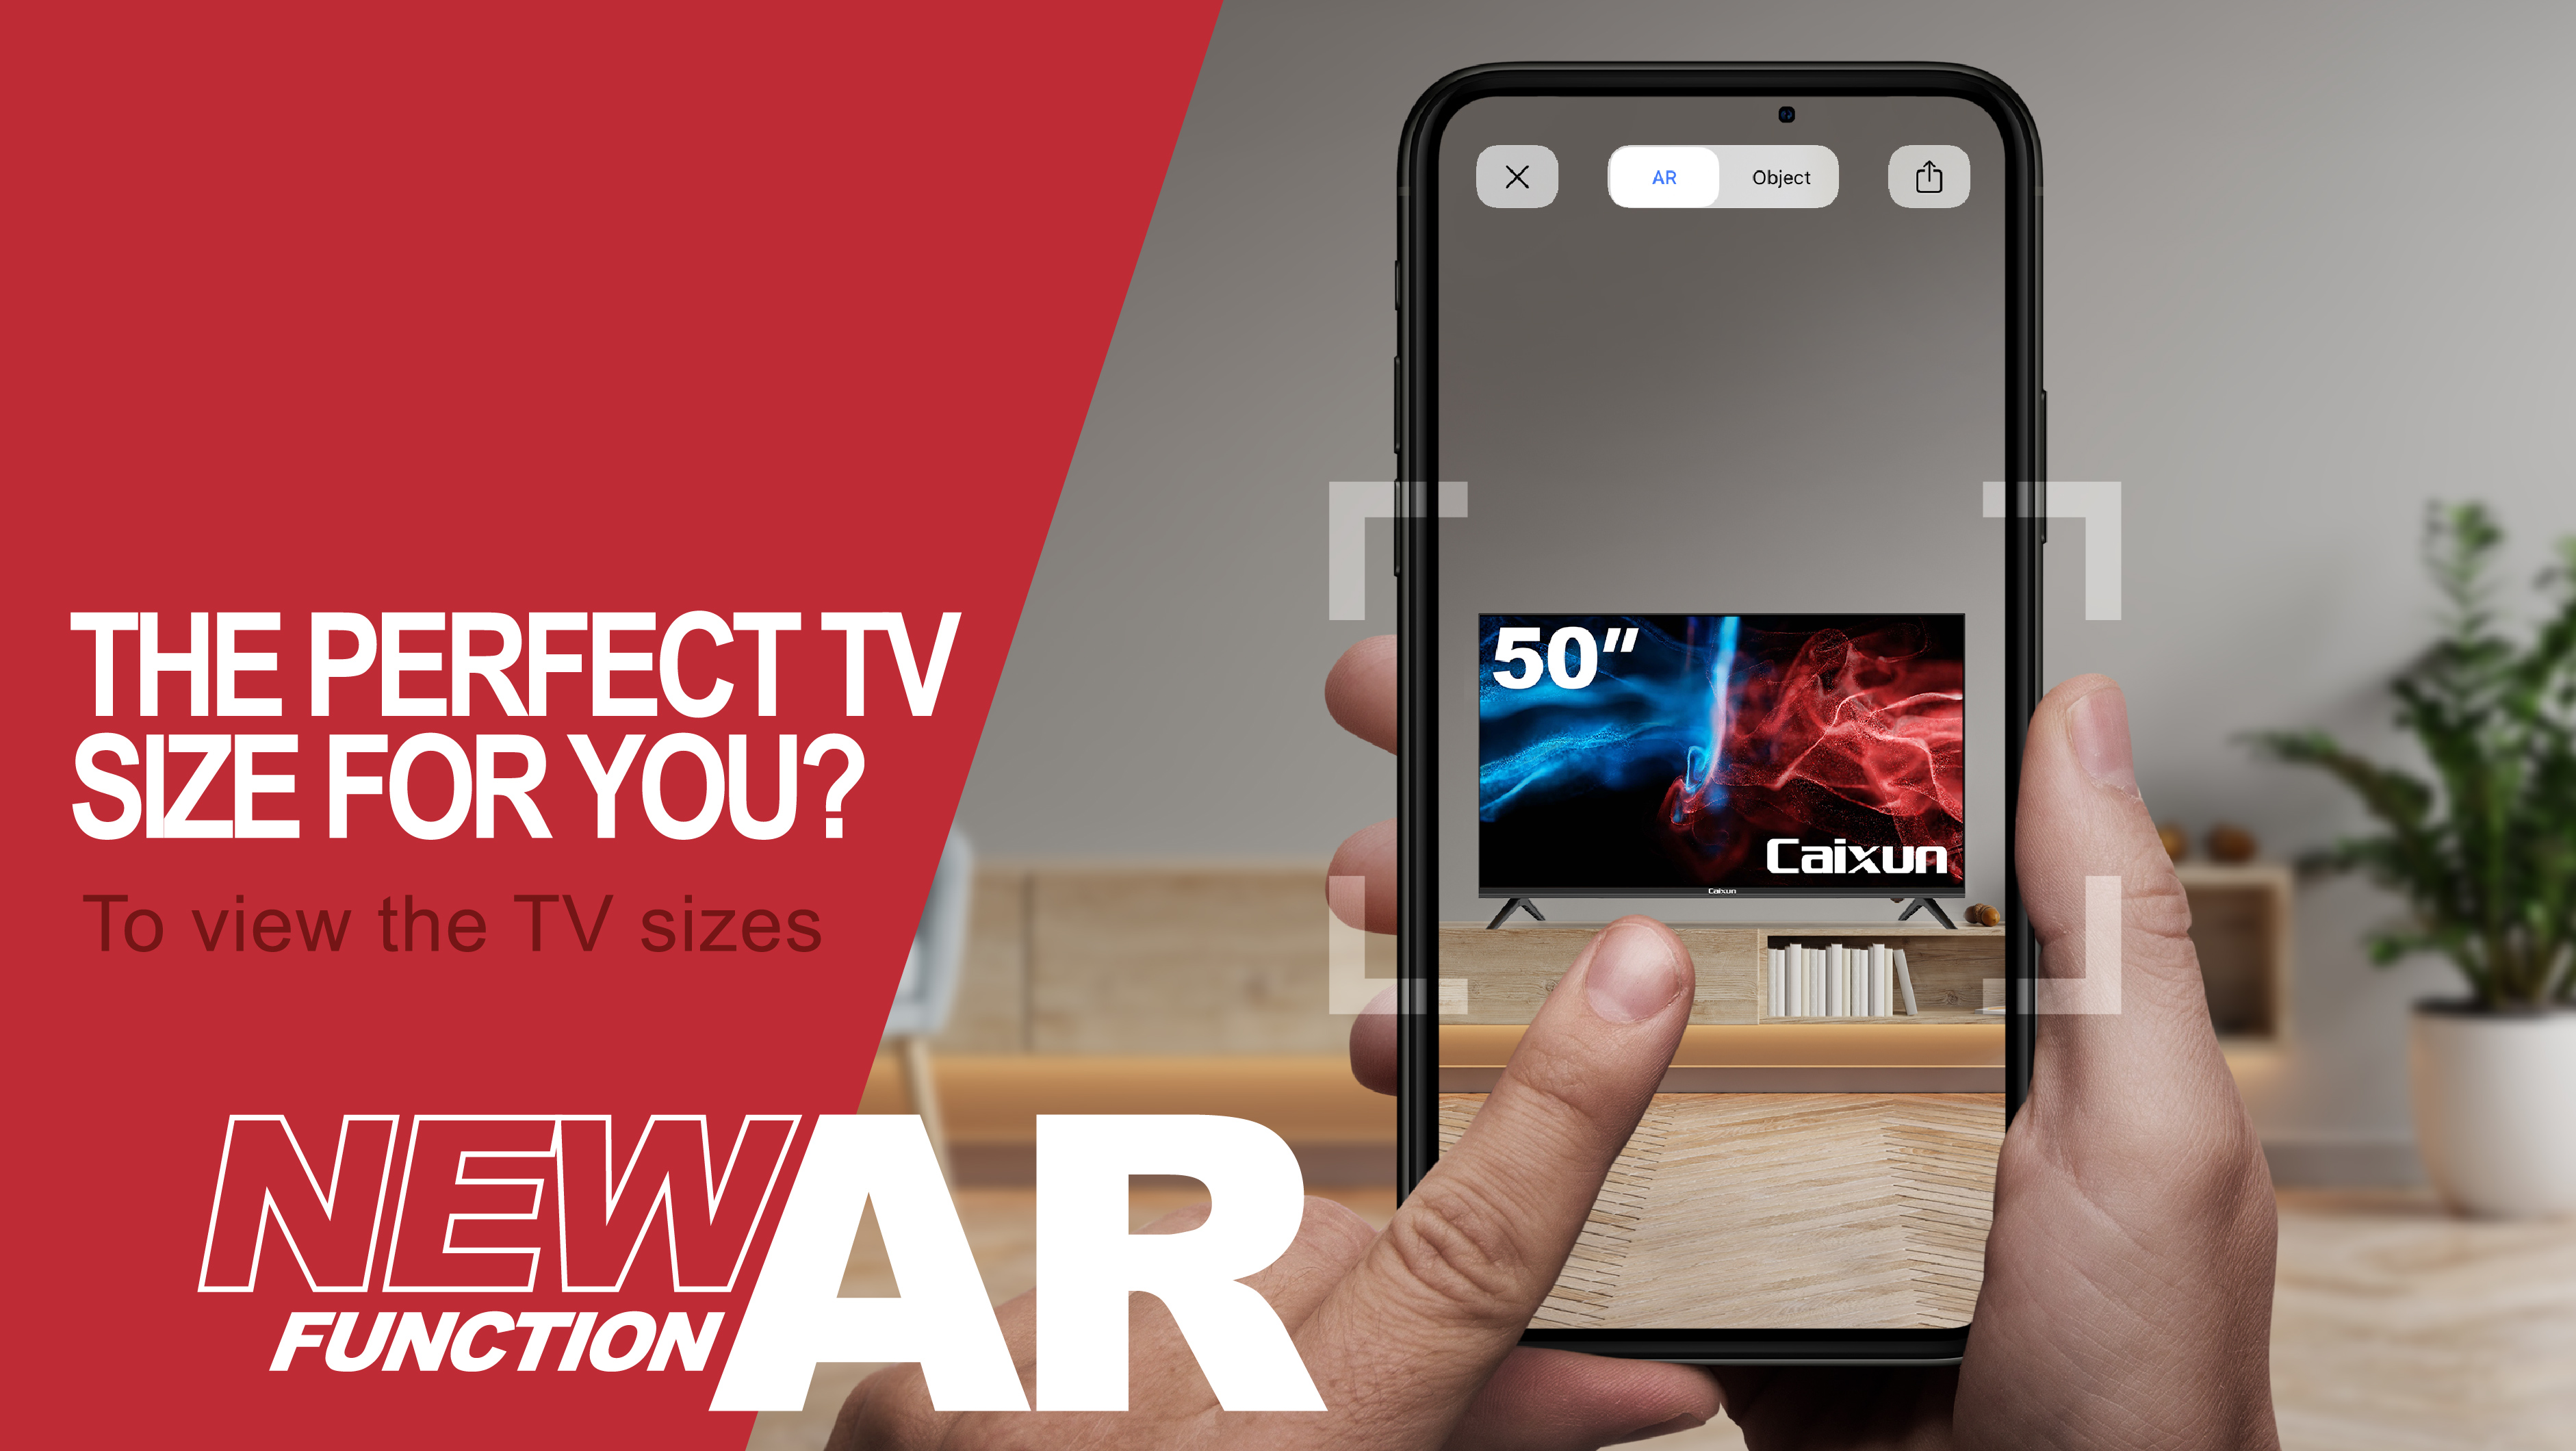 The Perfect TV Size For You? Caxiun New AR Function